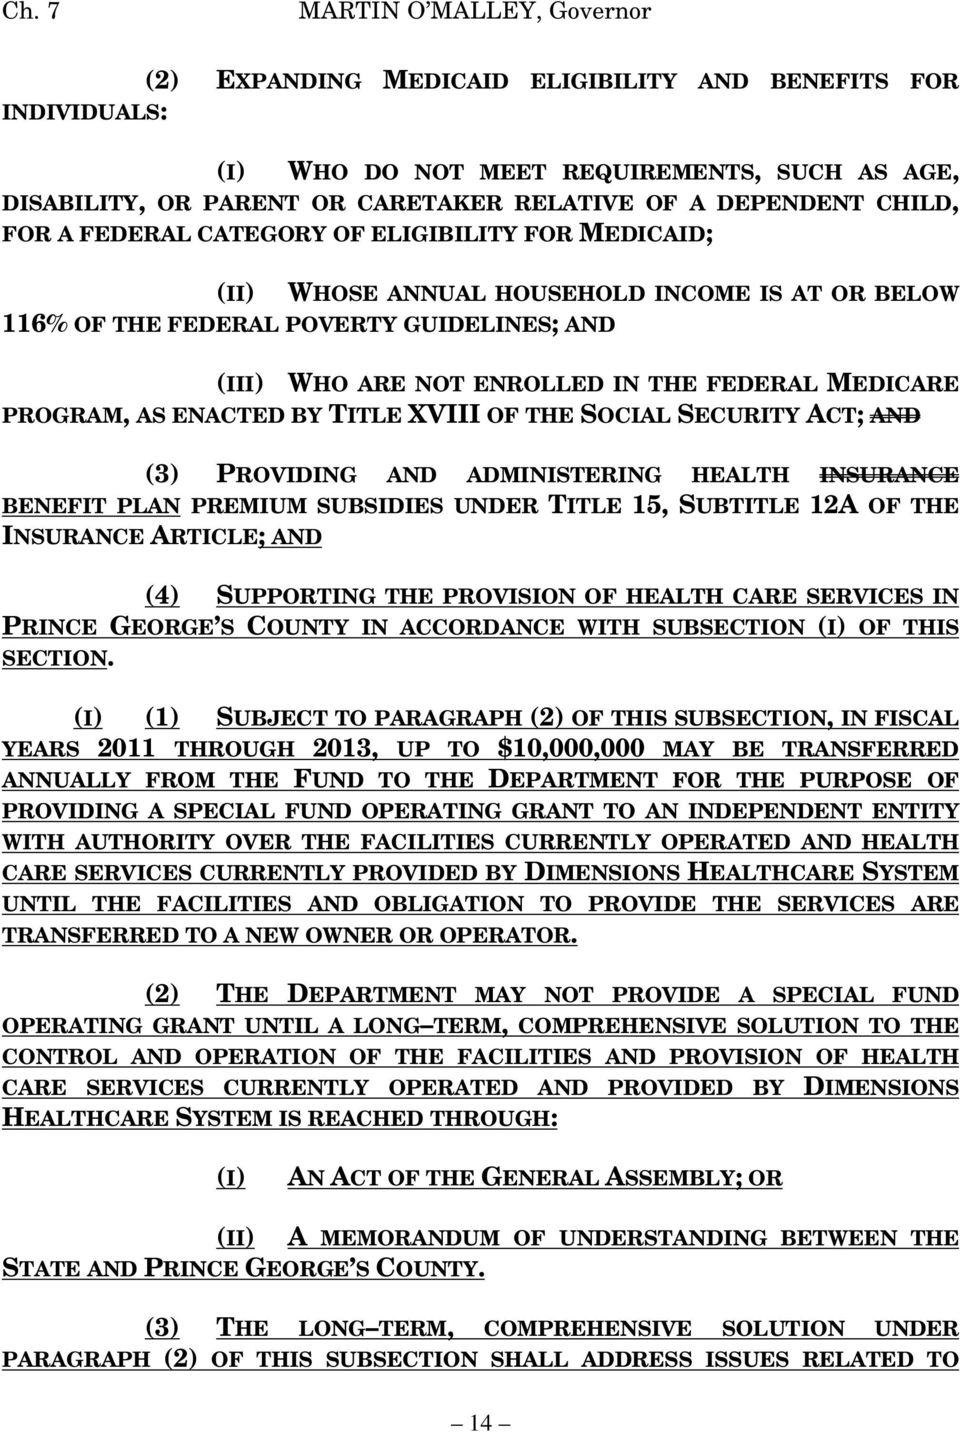 PROGRAM, AS ENACTED BY TITLE XVIII OF THE SOCIAL SECURITY ACT; AND (3) PROVIDING AND ADMINISTERING HEALTH INSURANCE BENEFIT PLAN PREMIUM SUBSIDIES UNDER TITLE 15, SUBTITLE 12A OF THE INSURANCE